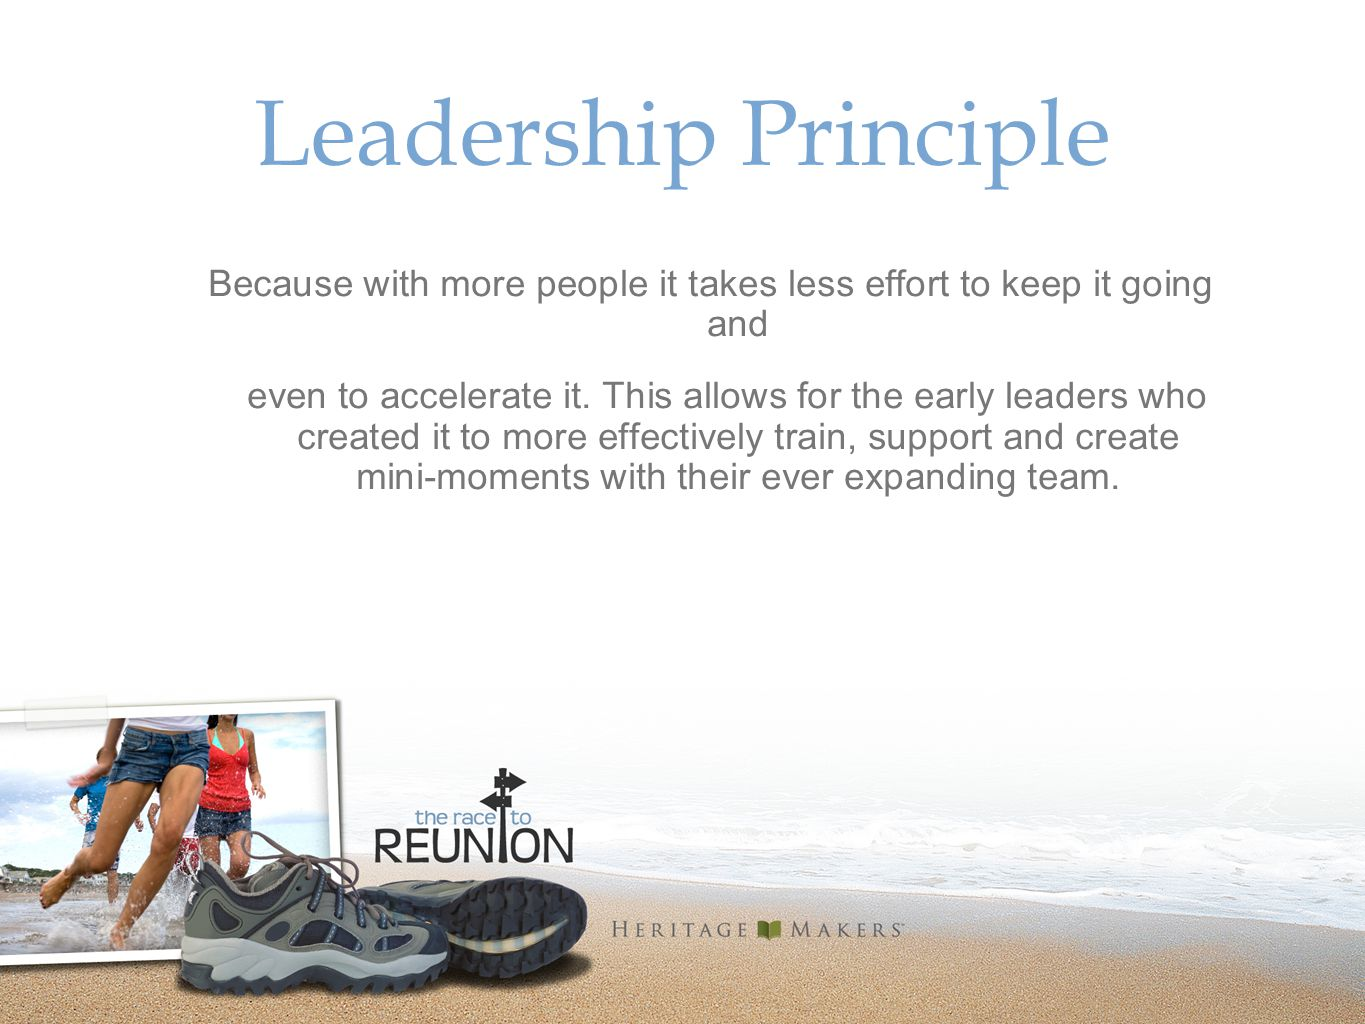 Leadership Principle Because with more people it takes less effort to keep it going and even to accelerate it.